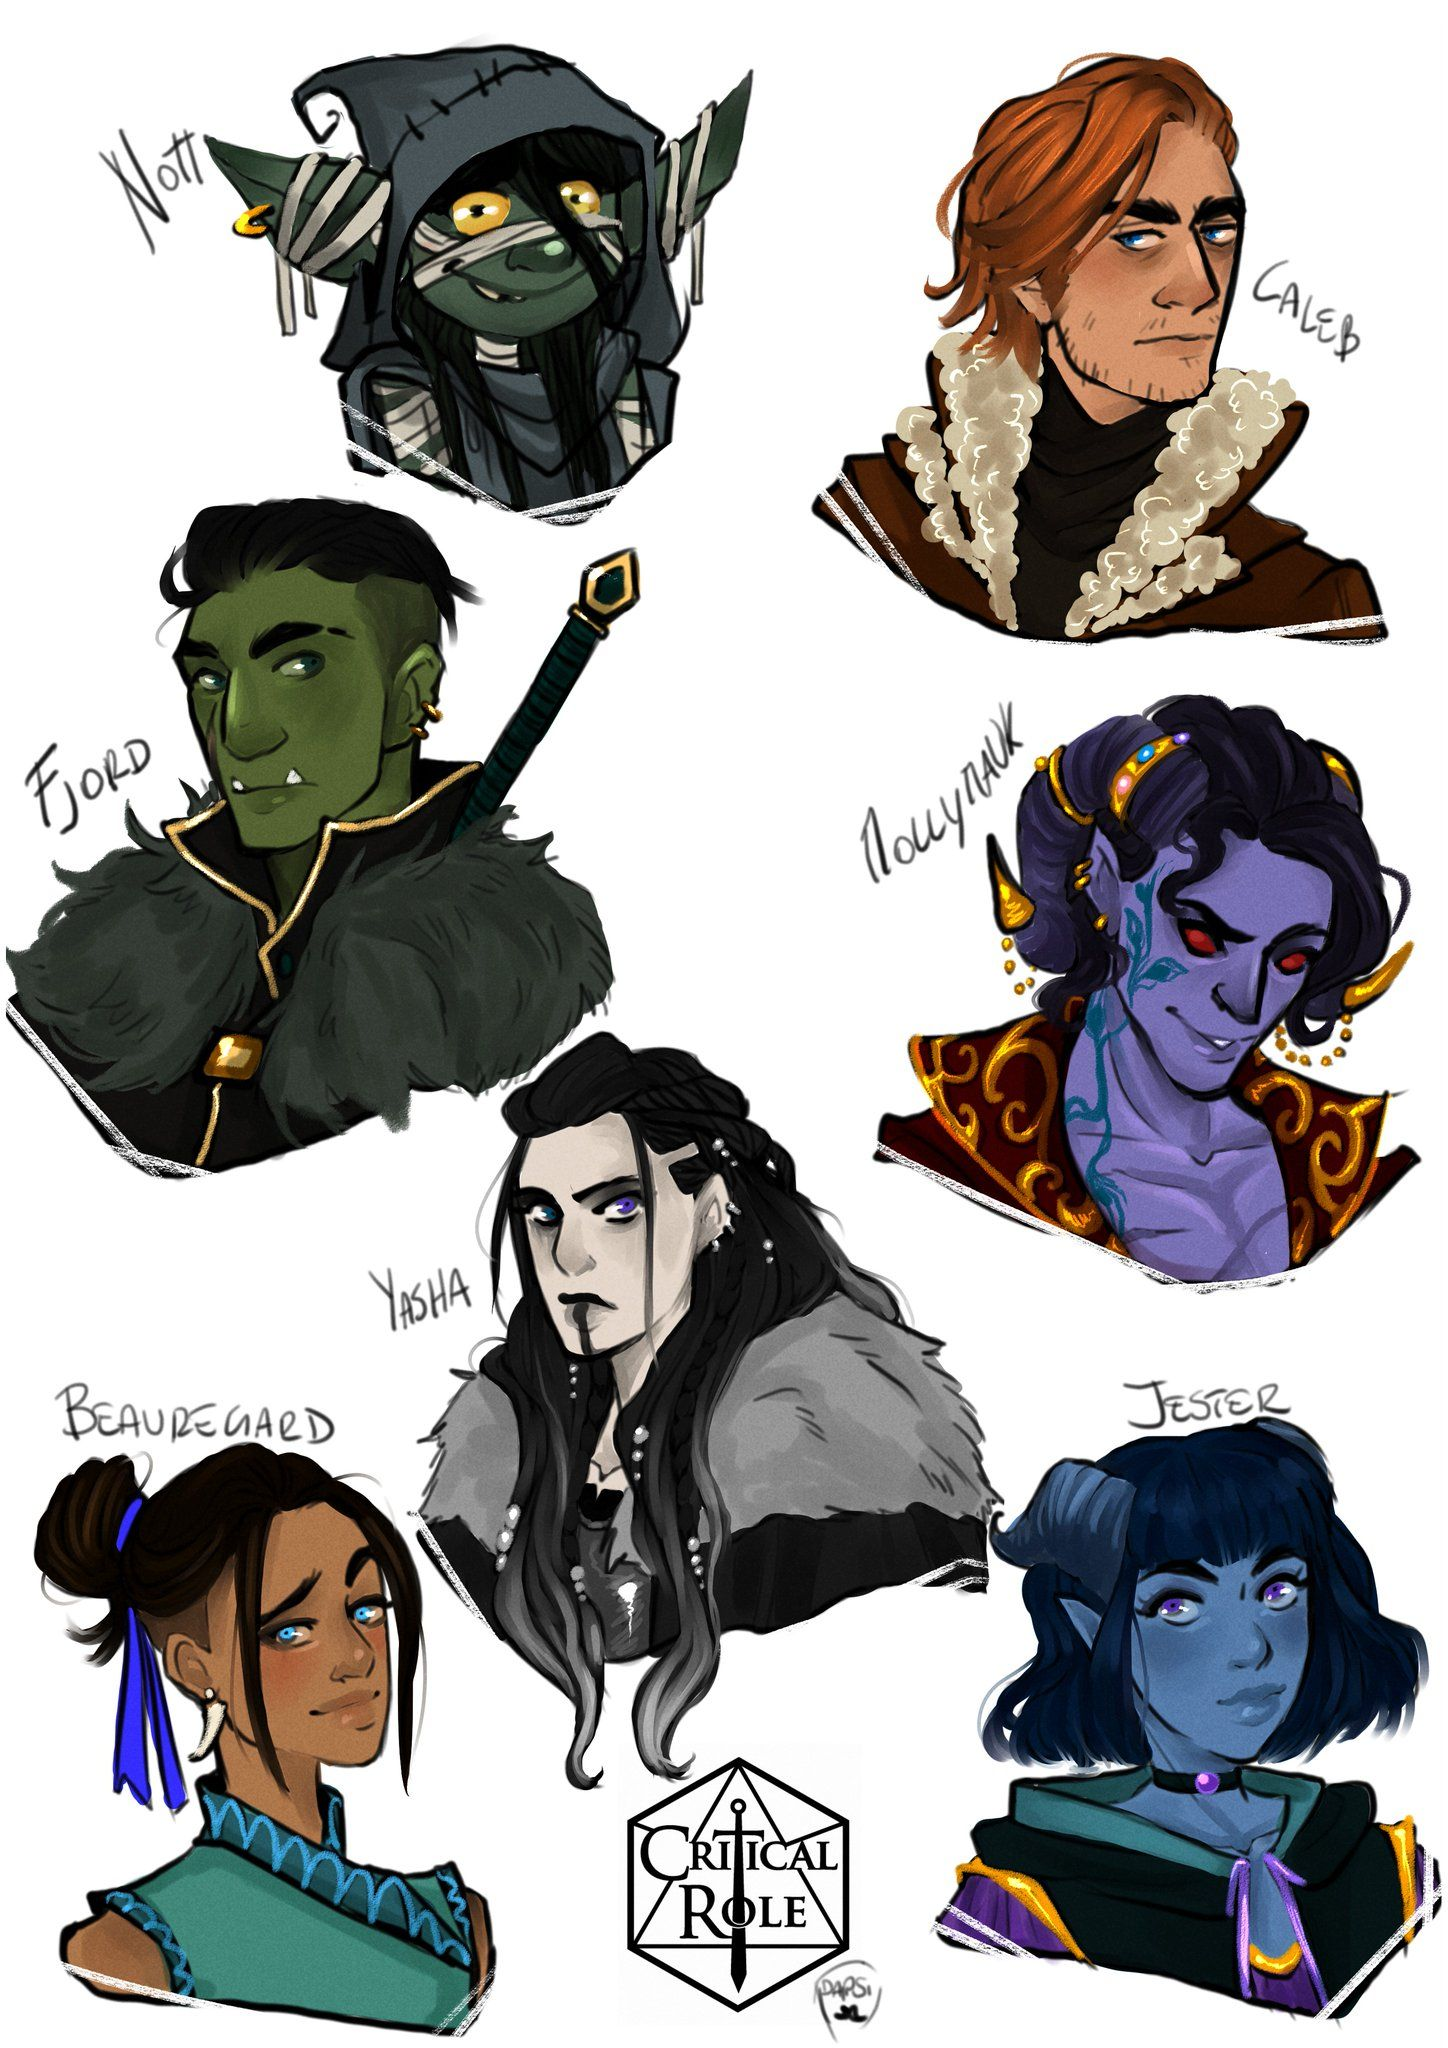 Criticalrole Hashtag On Twitter Critical Role Characters Critical Role Critical Role Fan Art Critical role fan art gallery: criticalrole hashtag on twitter